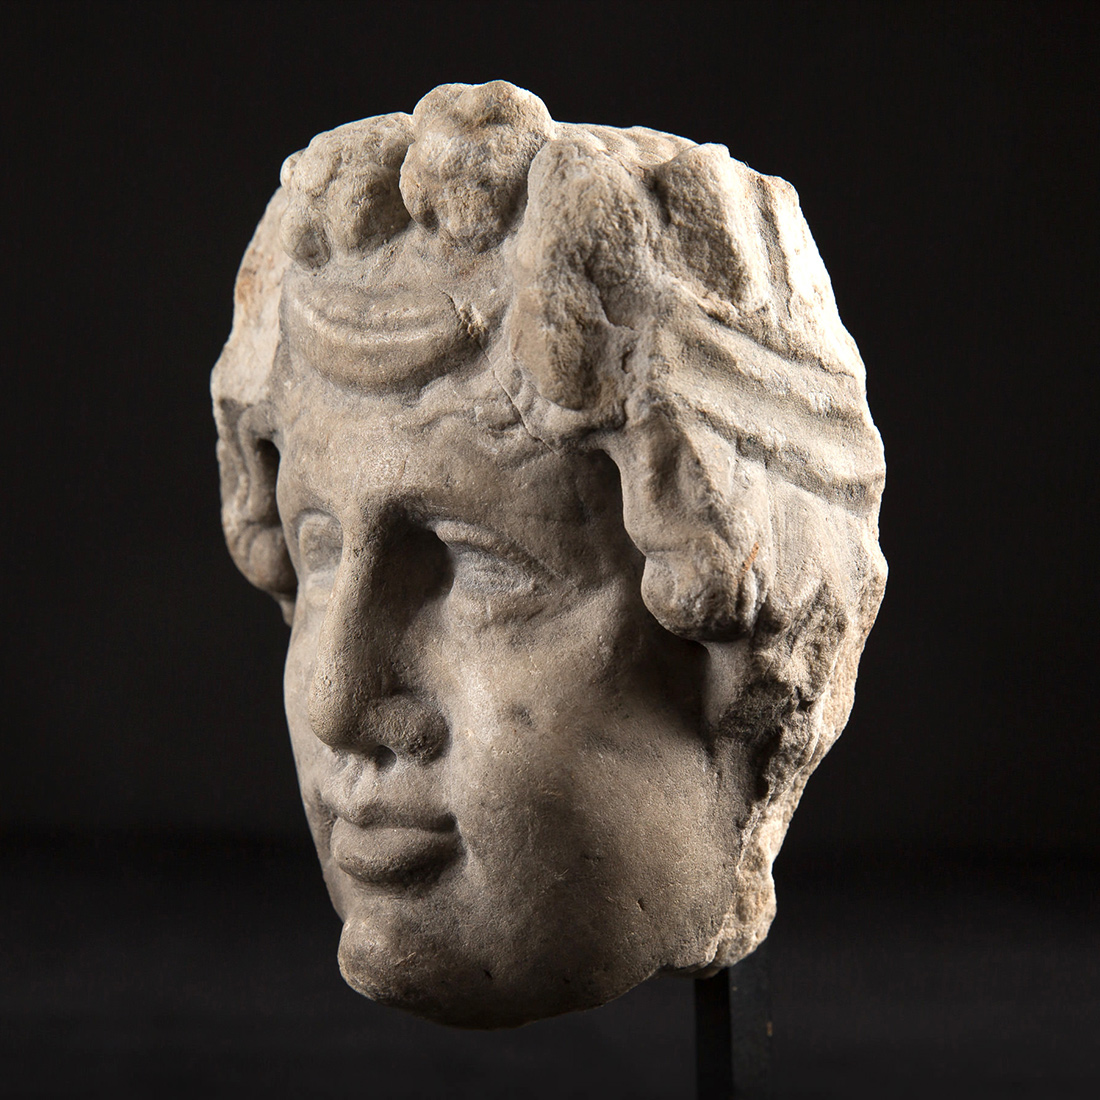 Photo of dionysus-marble-head-greece-antiquities-ancient-art